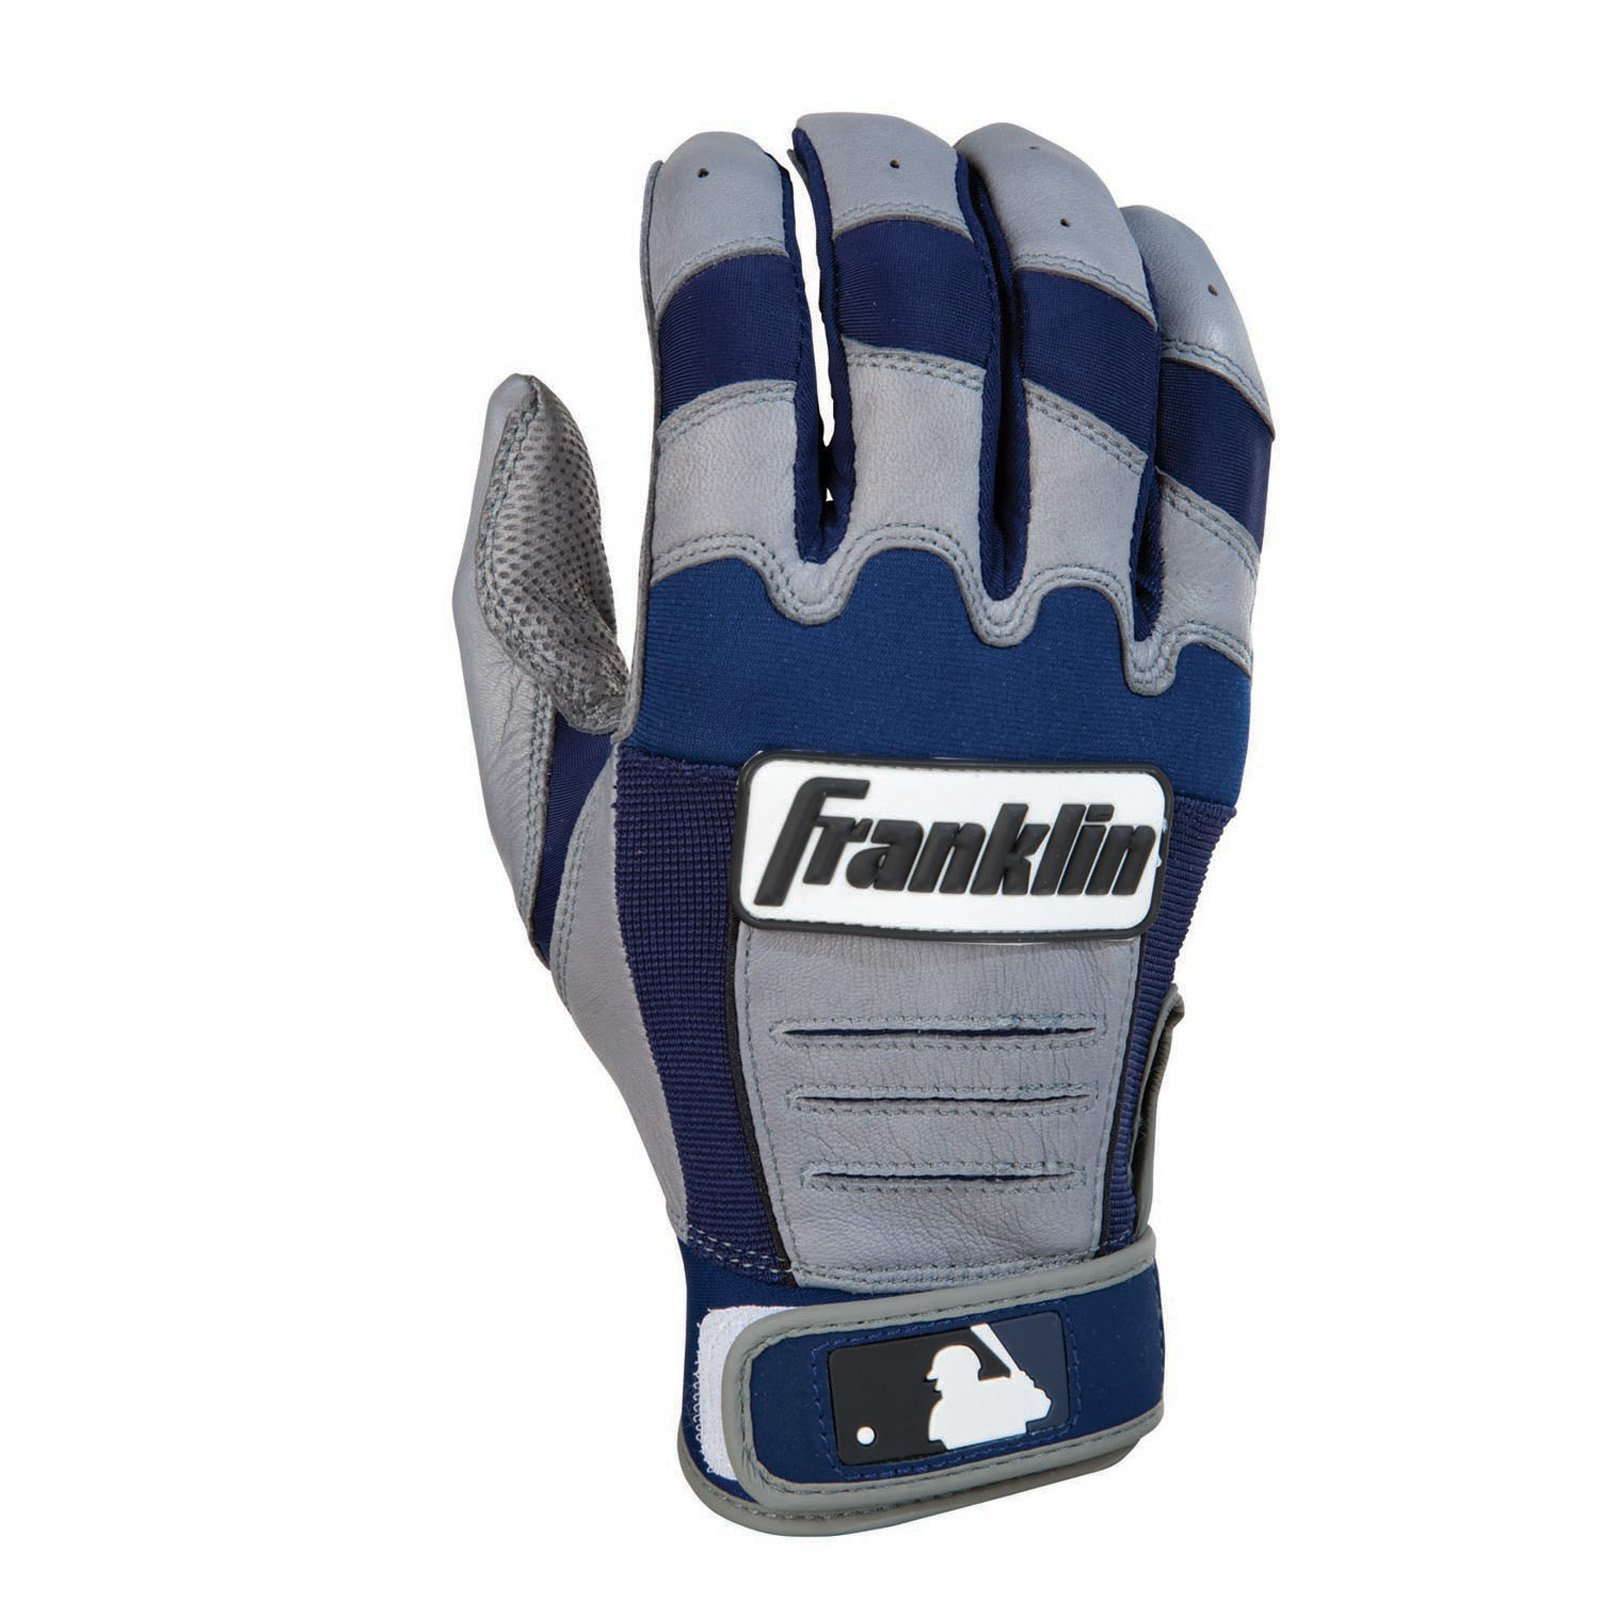 Franklin CFX Pro Series Youth Batting Gloves - Gray/Navy